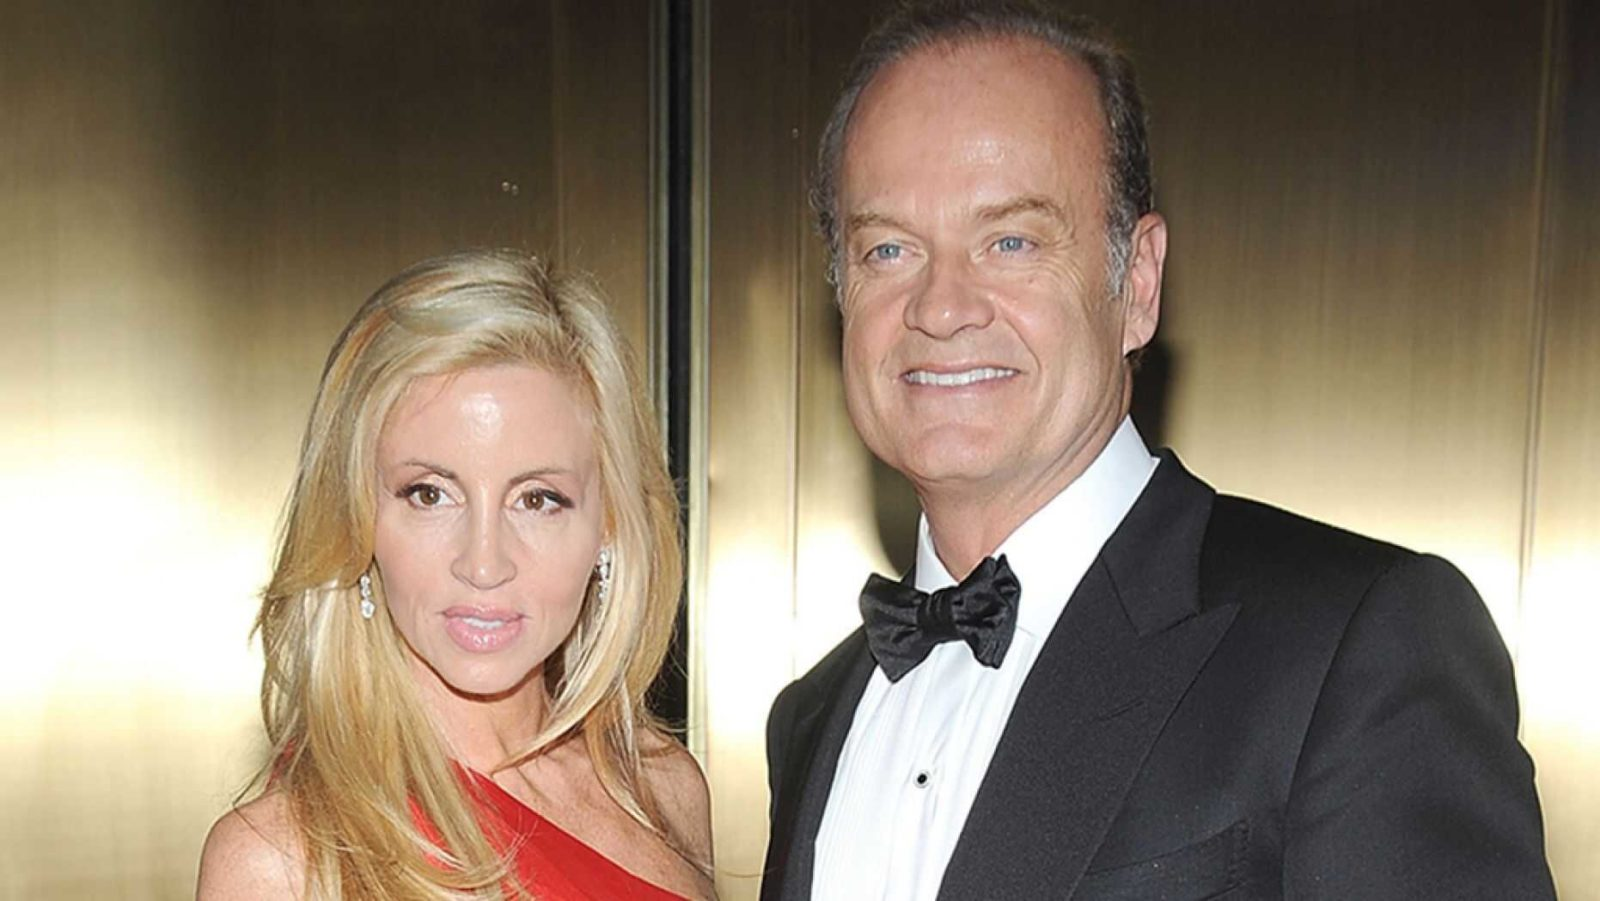 Kim Richards defends Camille Grammer amid feud with ex-husband Kelsey Grammer